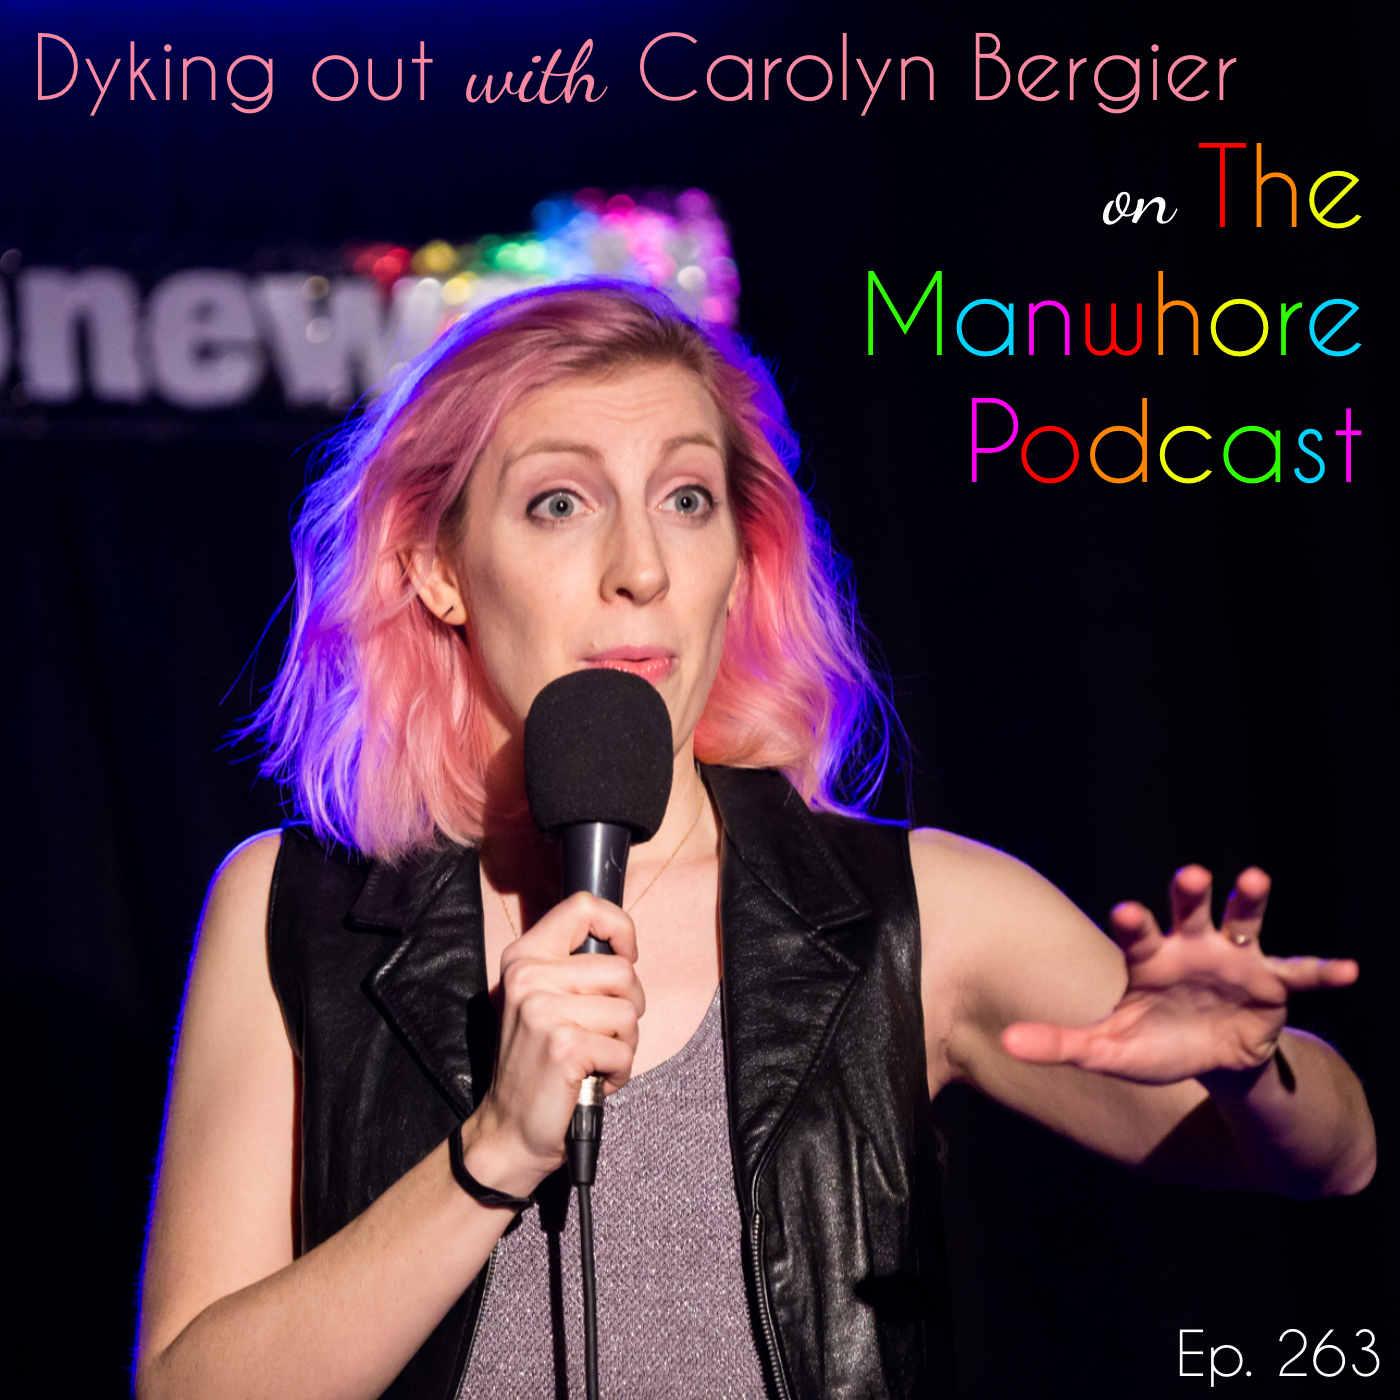 The Manwhore Podcast: A Sex-Positive Quest - Ep. 263: Dyking Out on Divorce with Carolyn Bergier